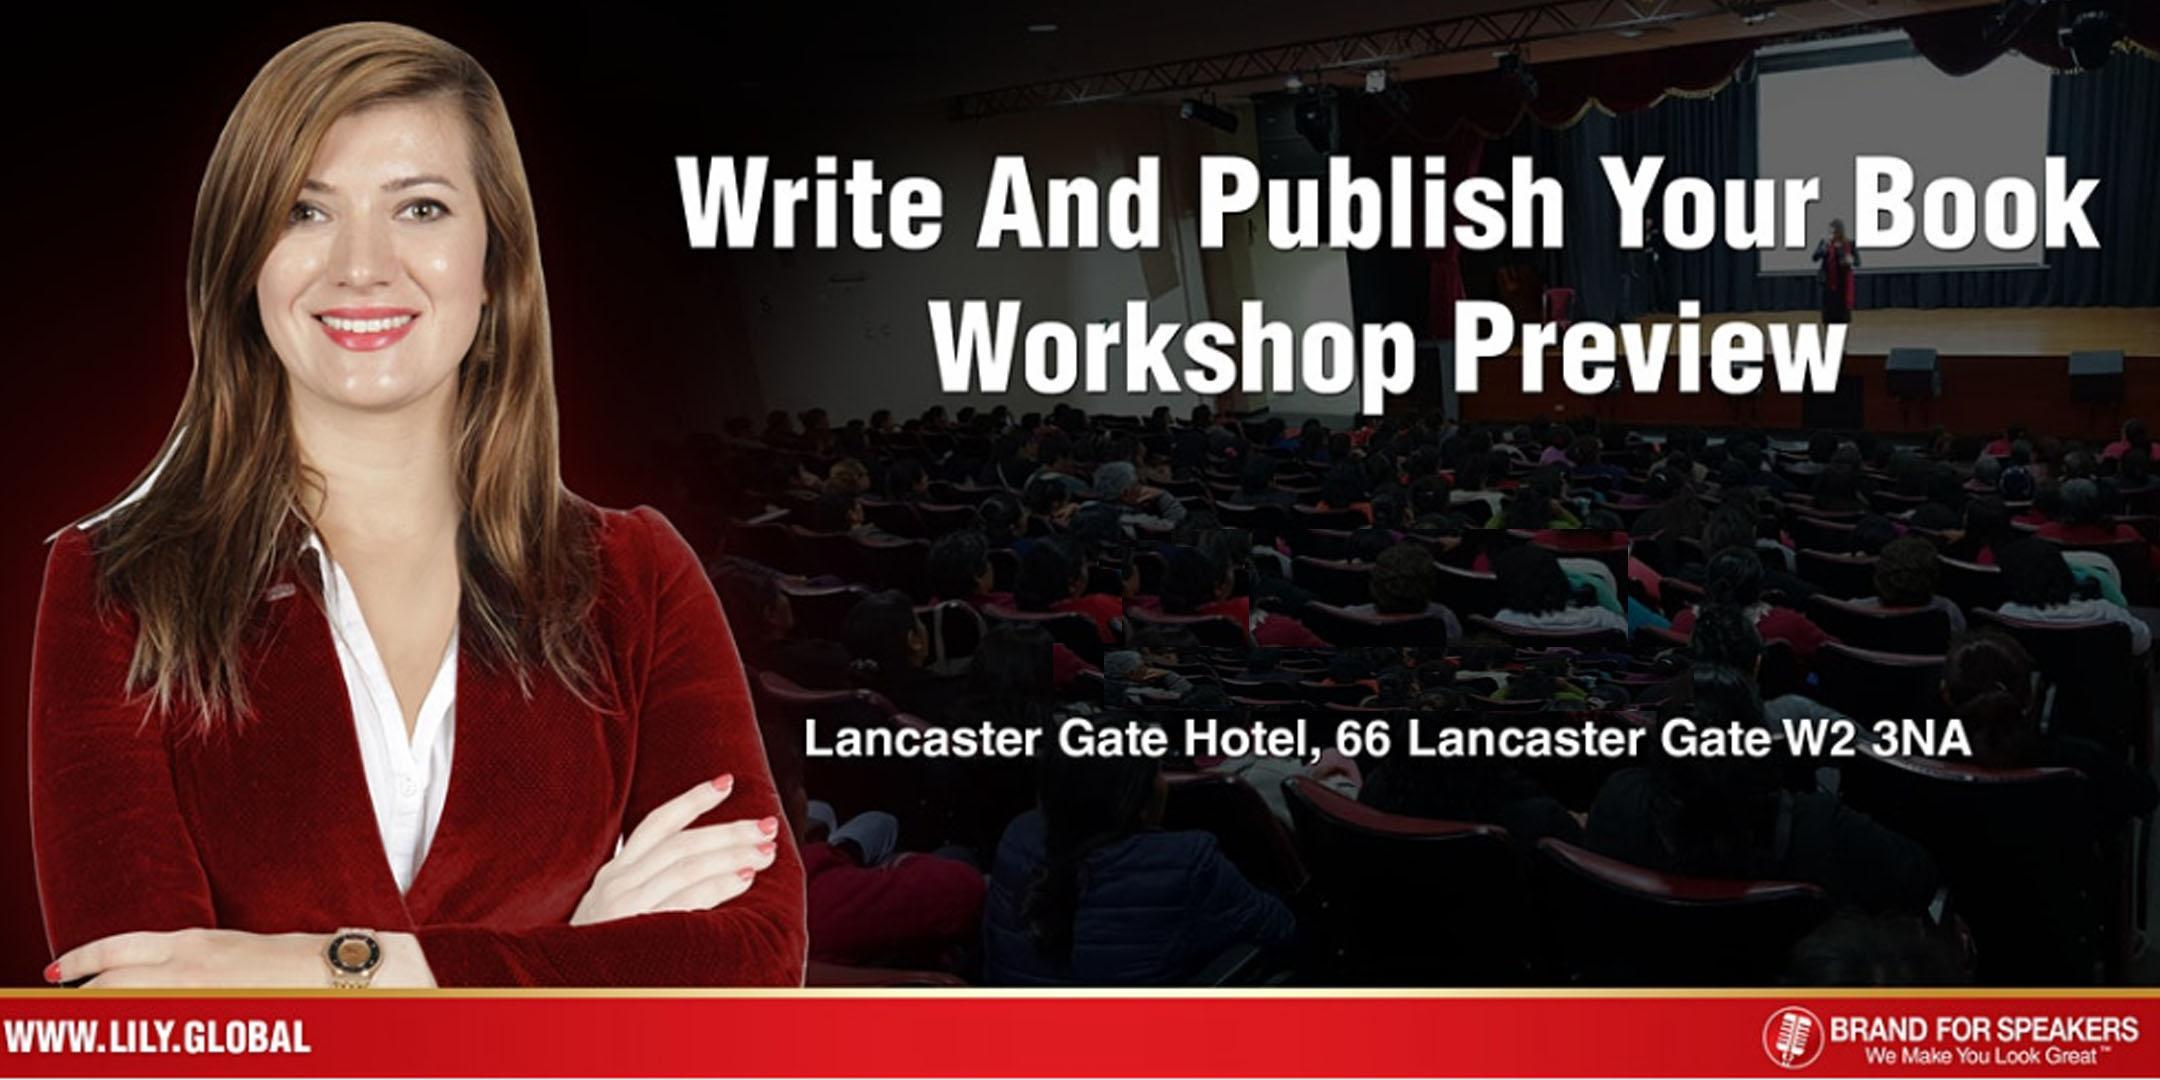 Write And Publish Your Book Workshop Preview